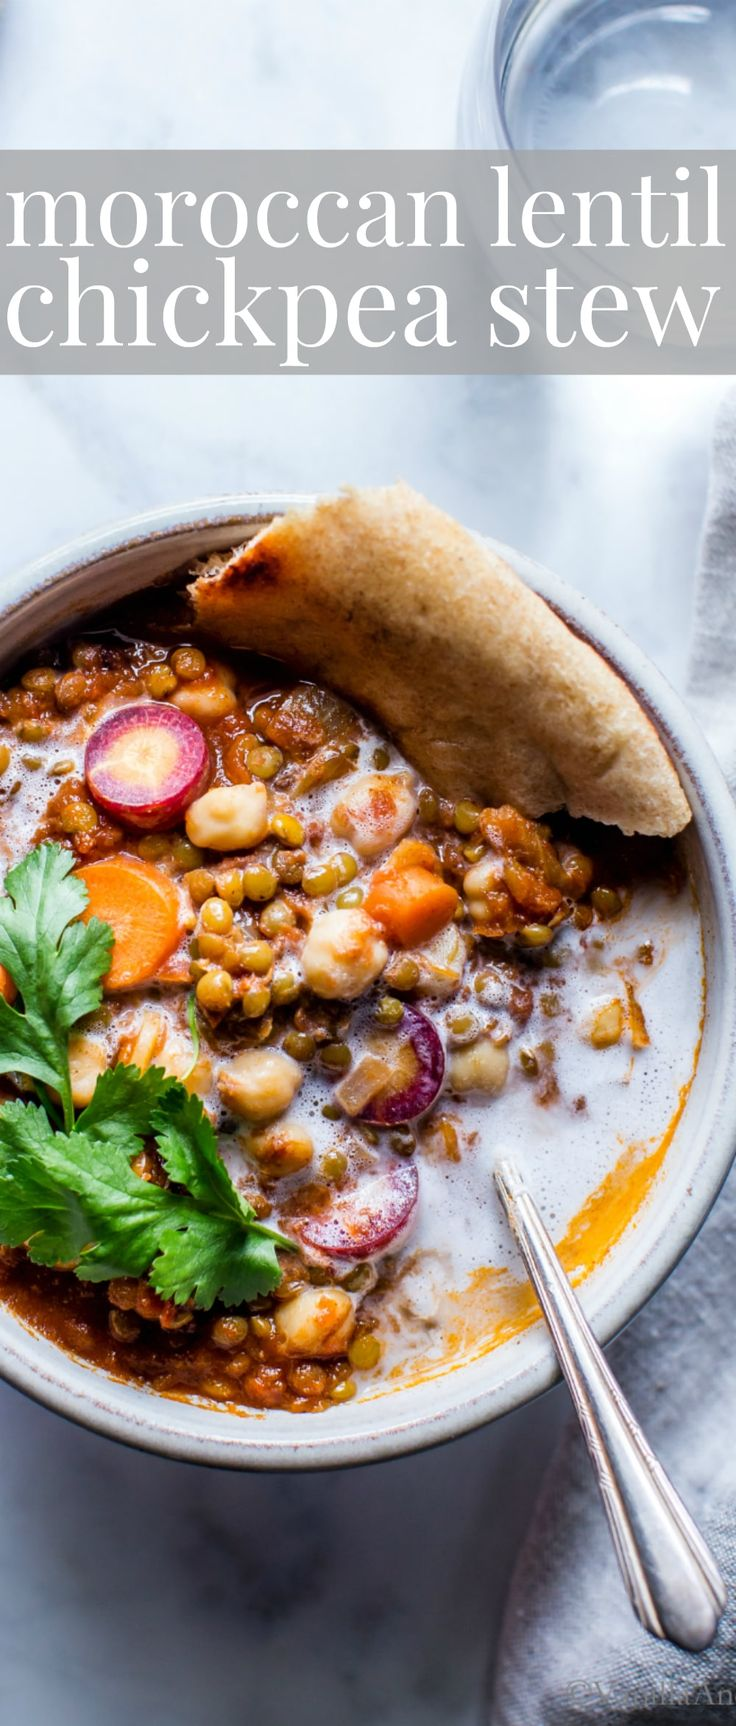 Simple ingredients, and texture rich with mouthwatering flavors; Moroccan Lentil Chickpea Stew comes together in about 45 minutes. With a dollop of coconut cream, a sprinkle of cilantro and flatbread, dinner is ready! vegan gluten free